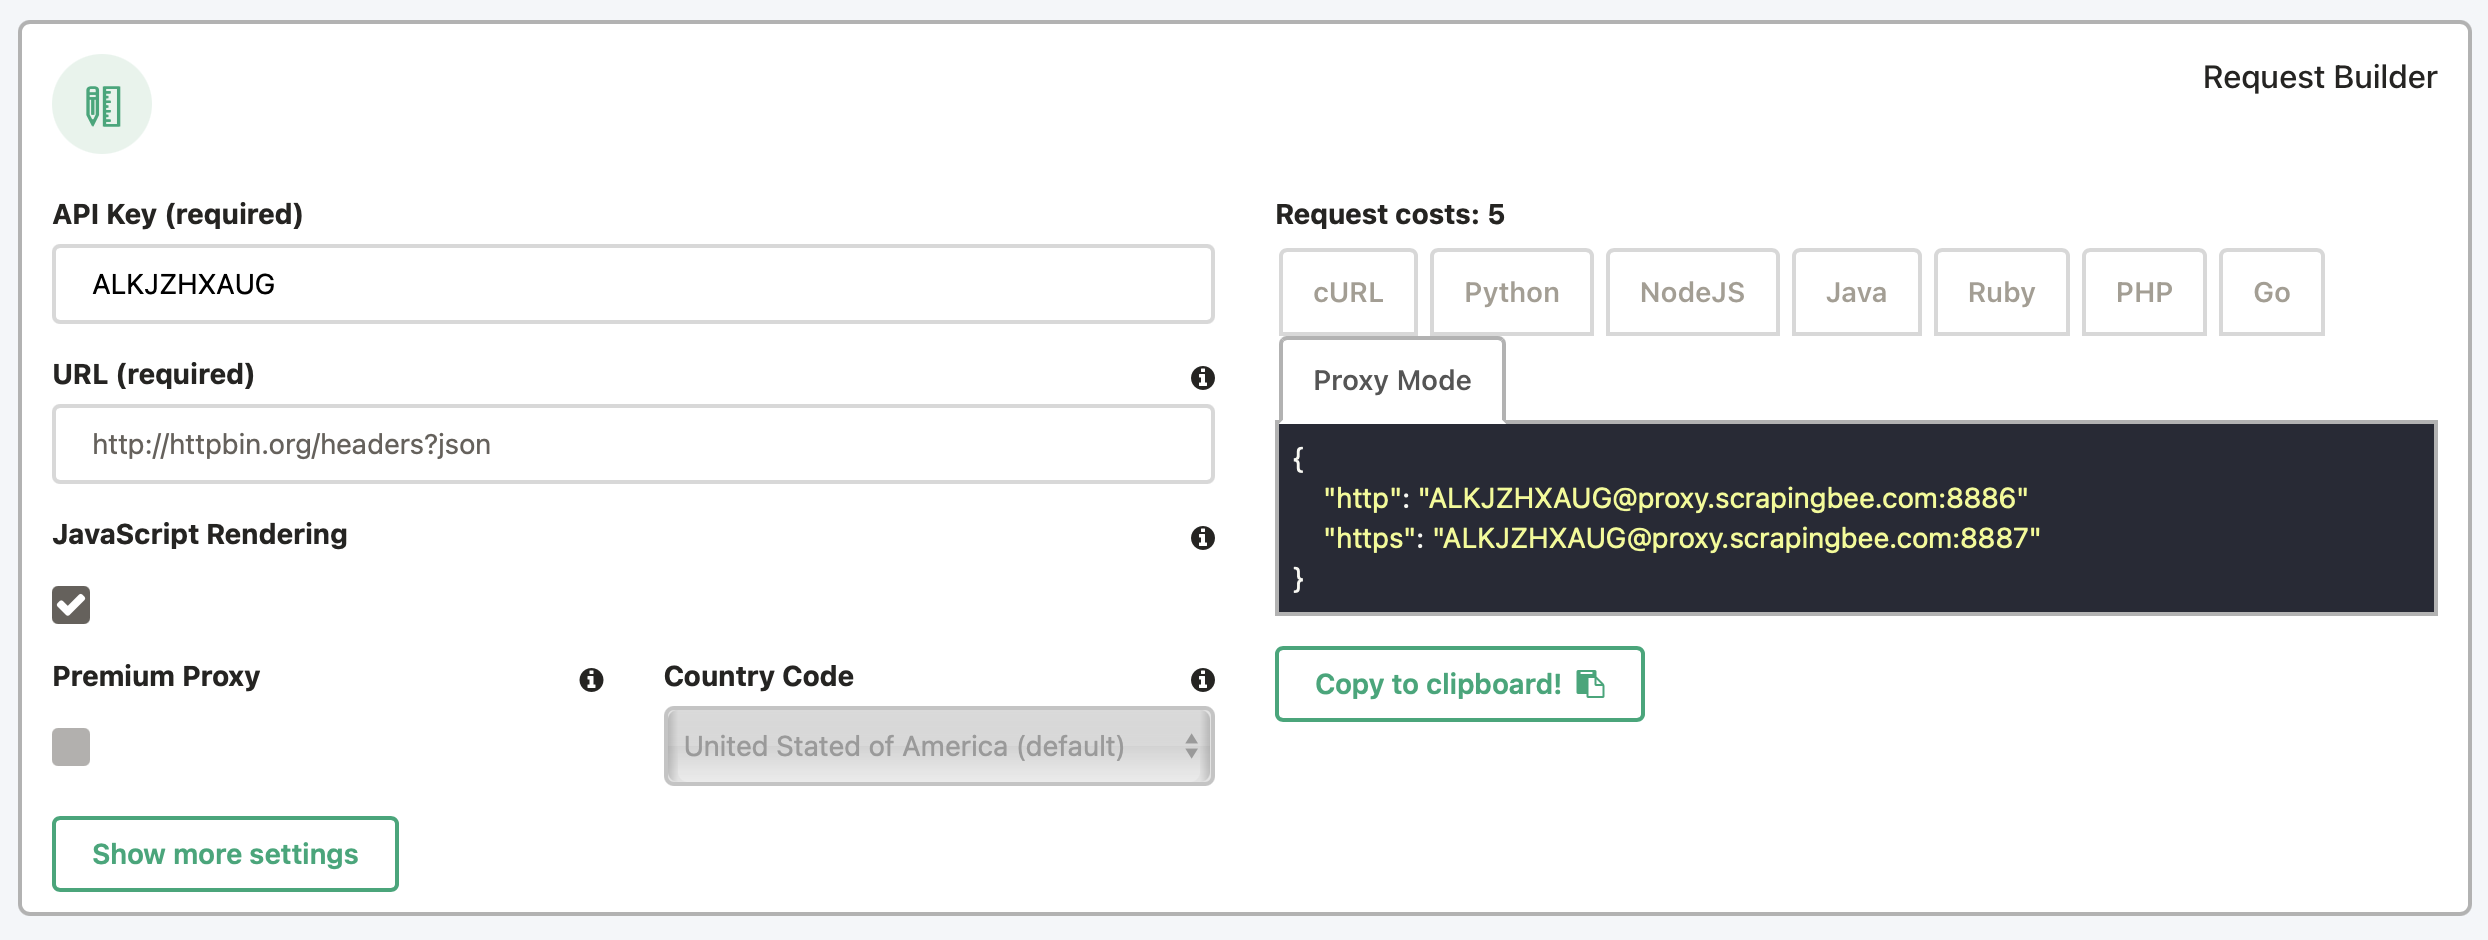 Request builder is available for proxy mode.